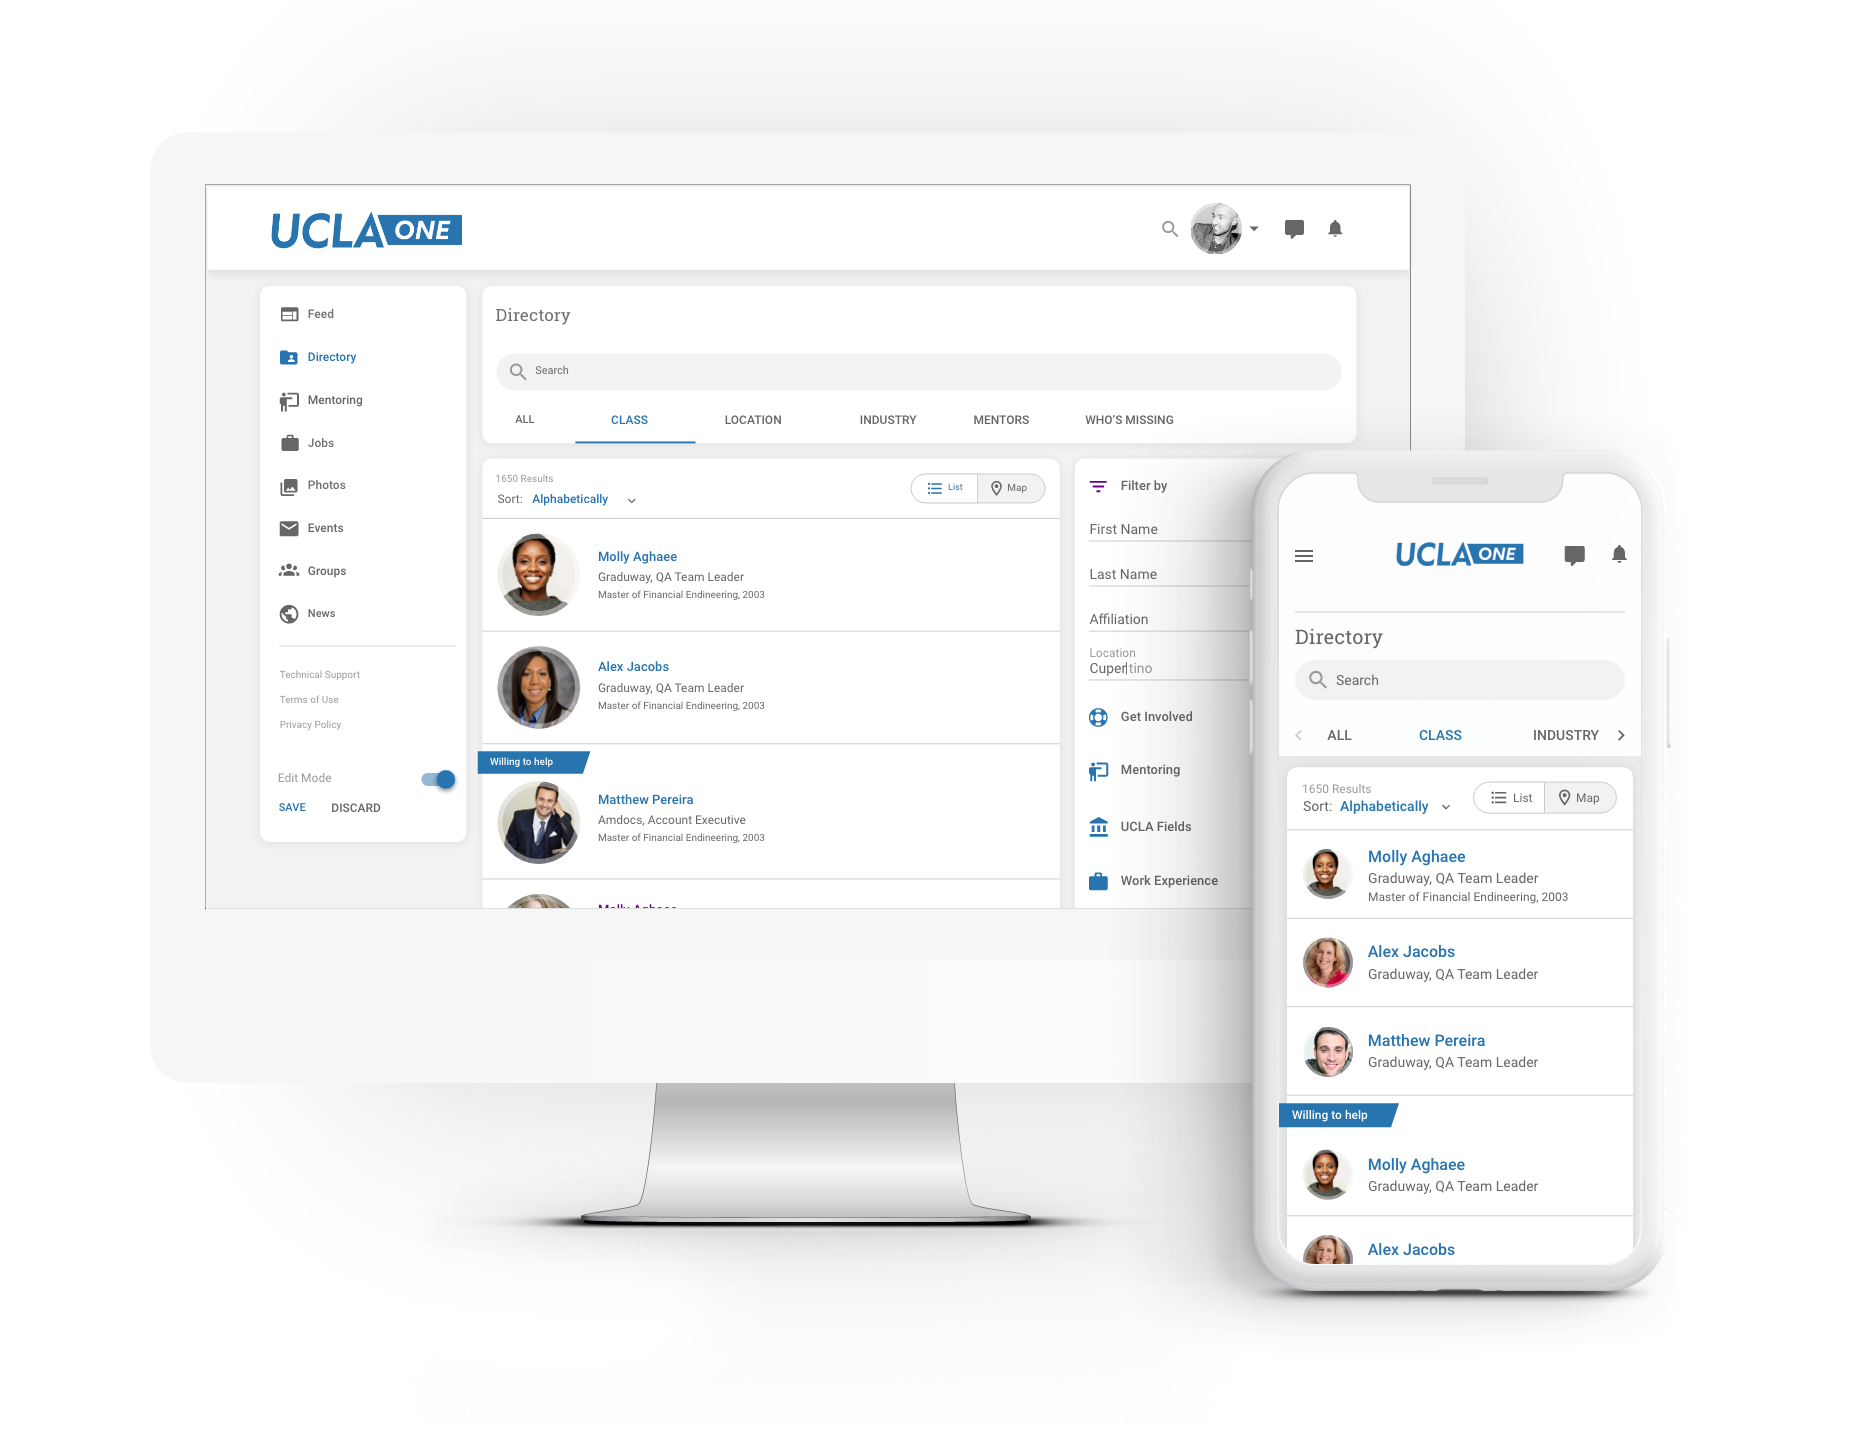 All your alumni in one place - whether looking to connect with an old classmate or looking for professional advice, the directory makes your network reachable at the click of a button.